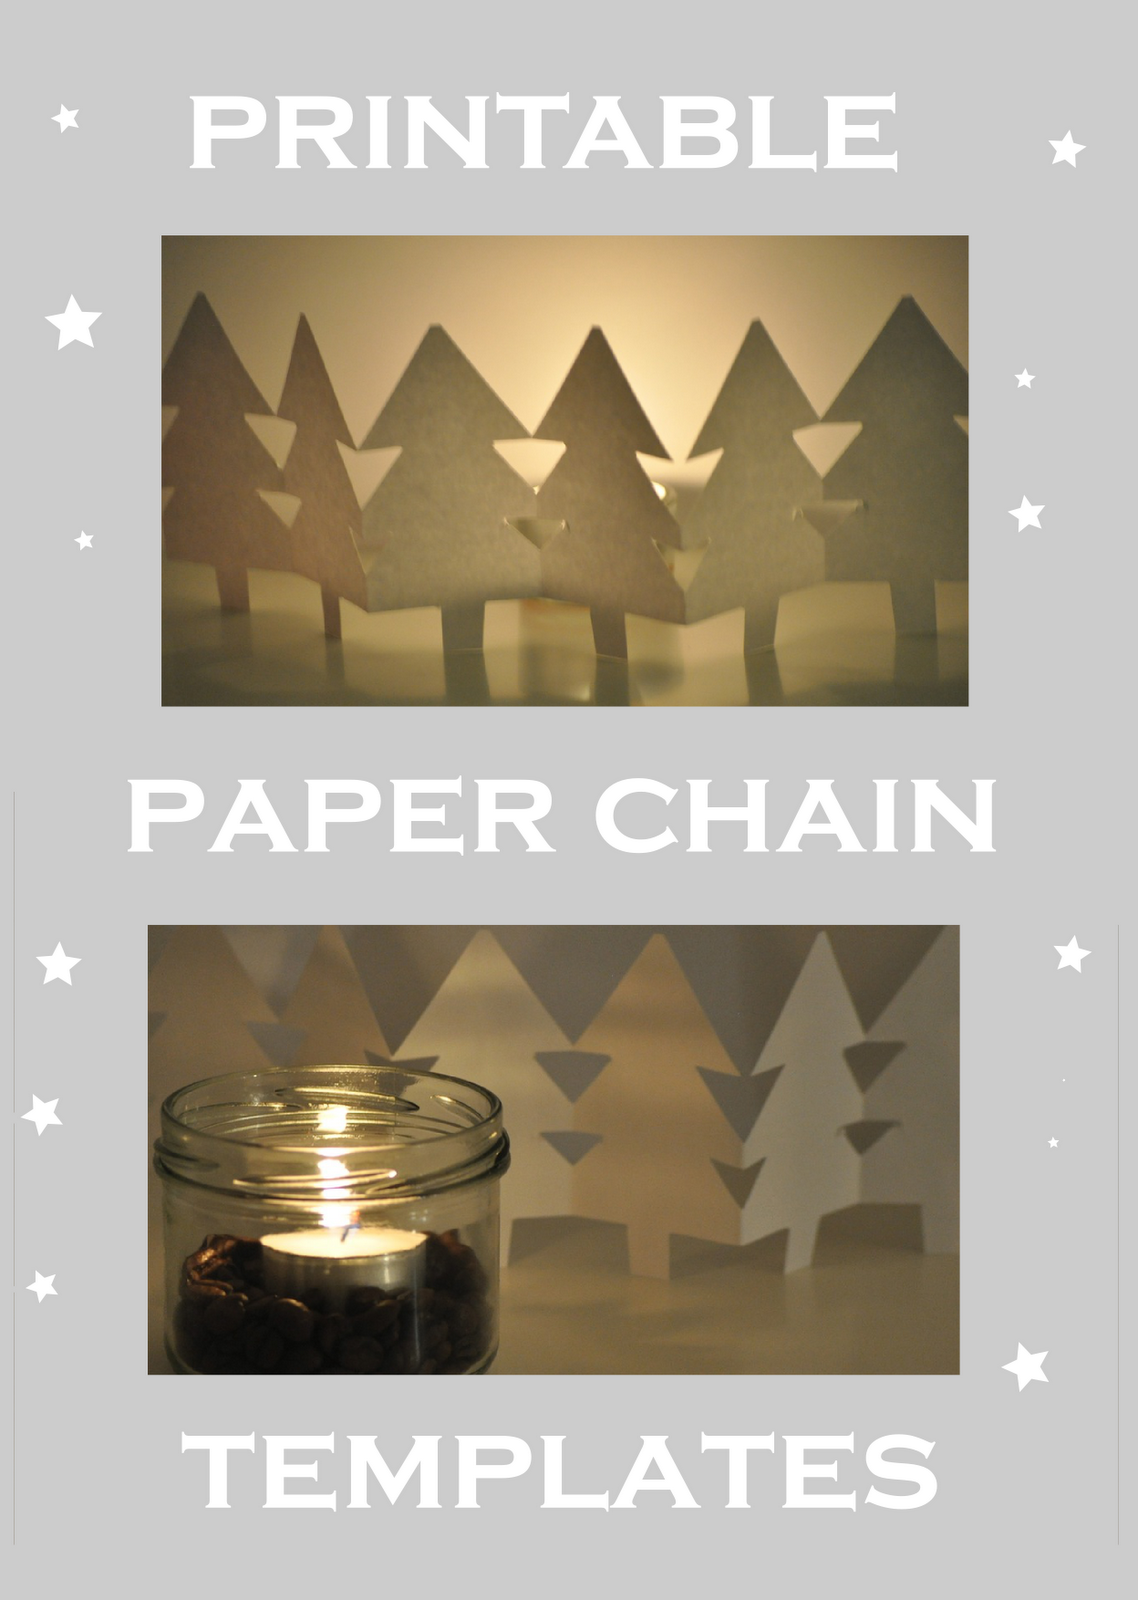 Free Printable Paper Chain Template For A Snowman Tree Reindeer And An Angel Vorlage Fur Papierkette